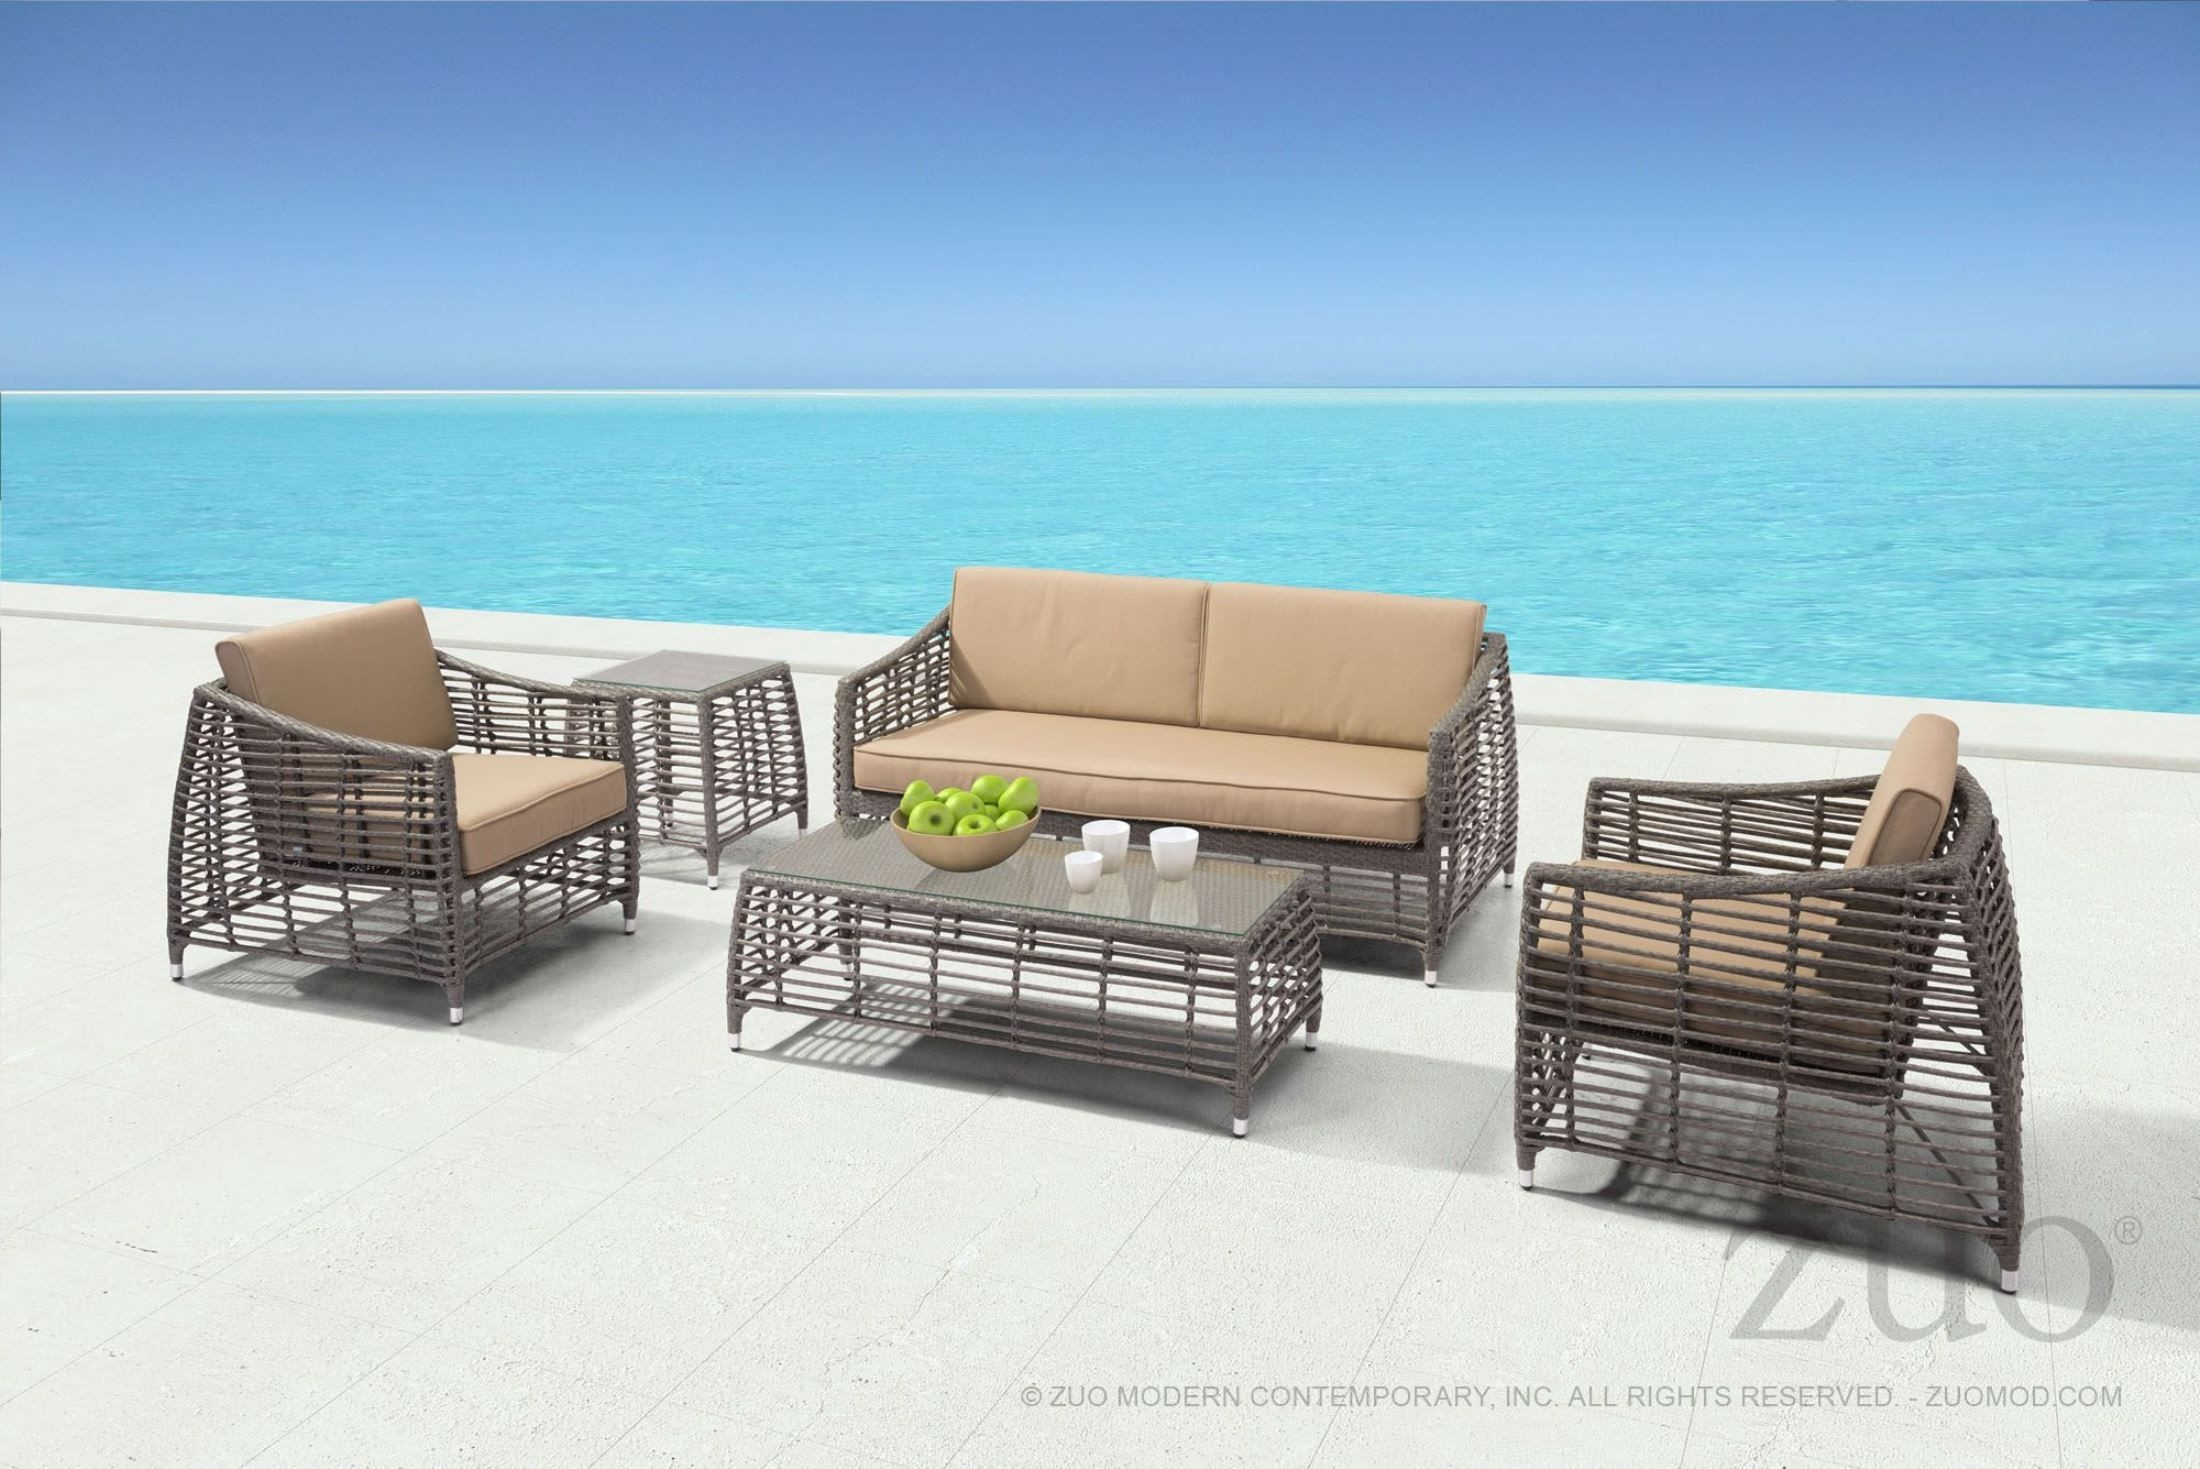 Trek Beach Gray and Beige Occasional Table Set from Zuo